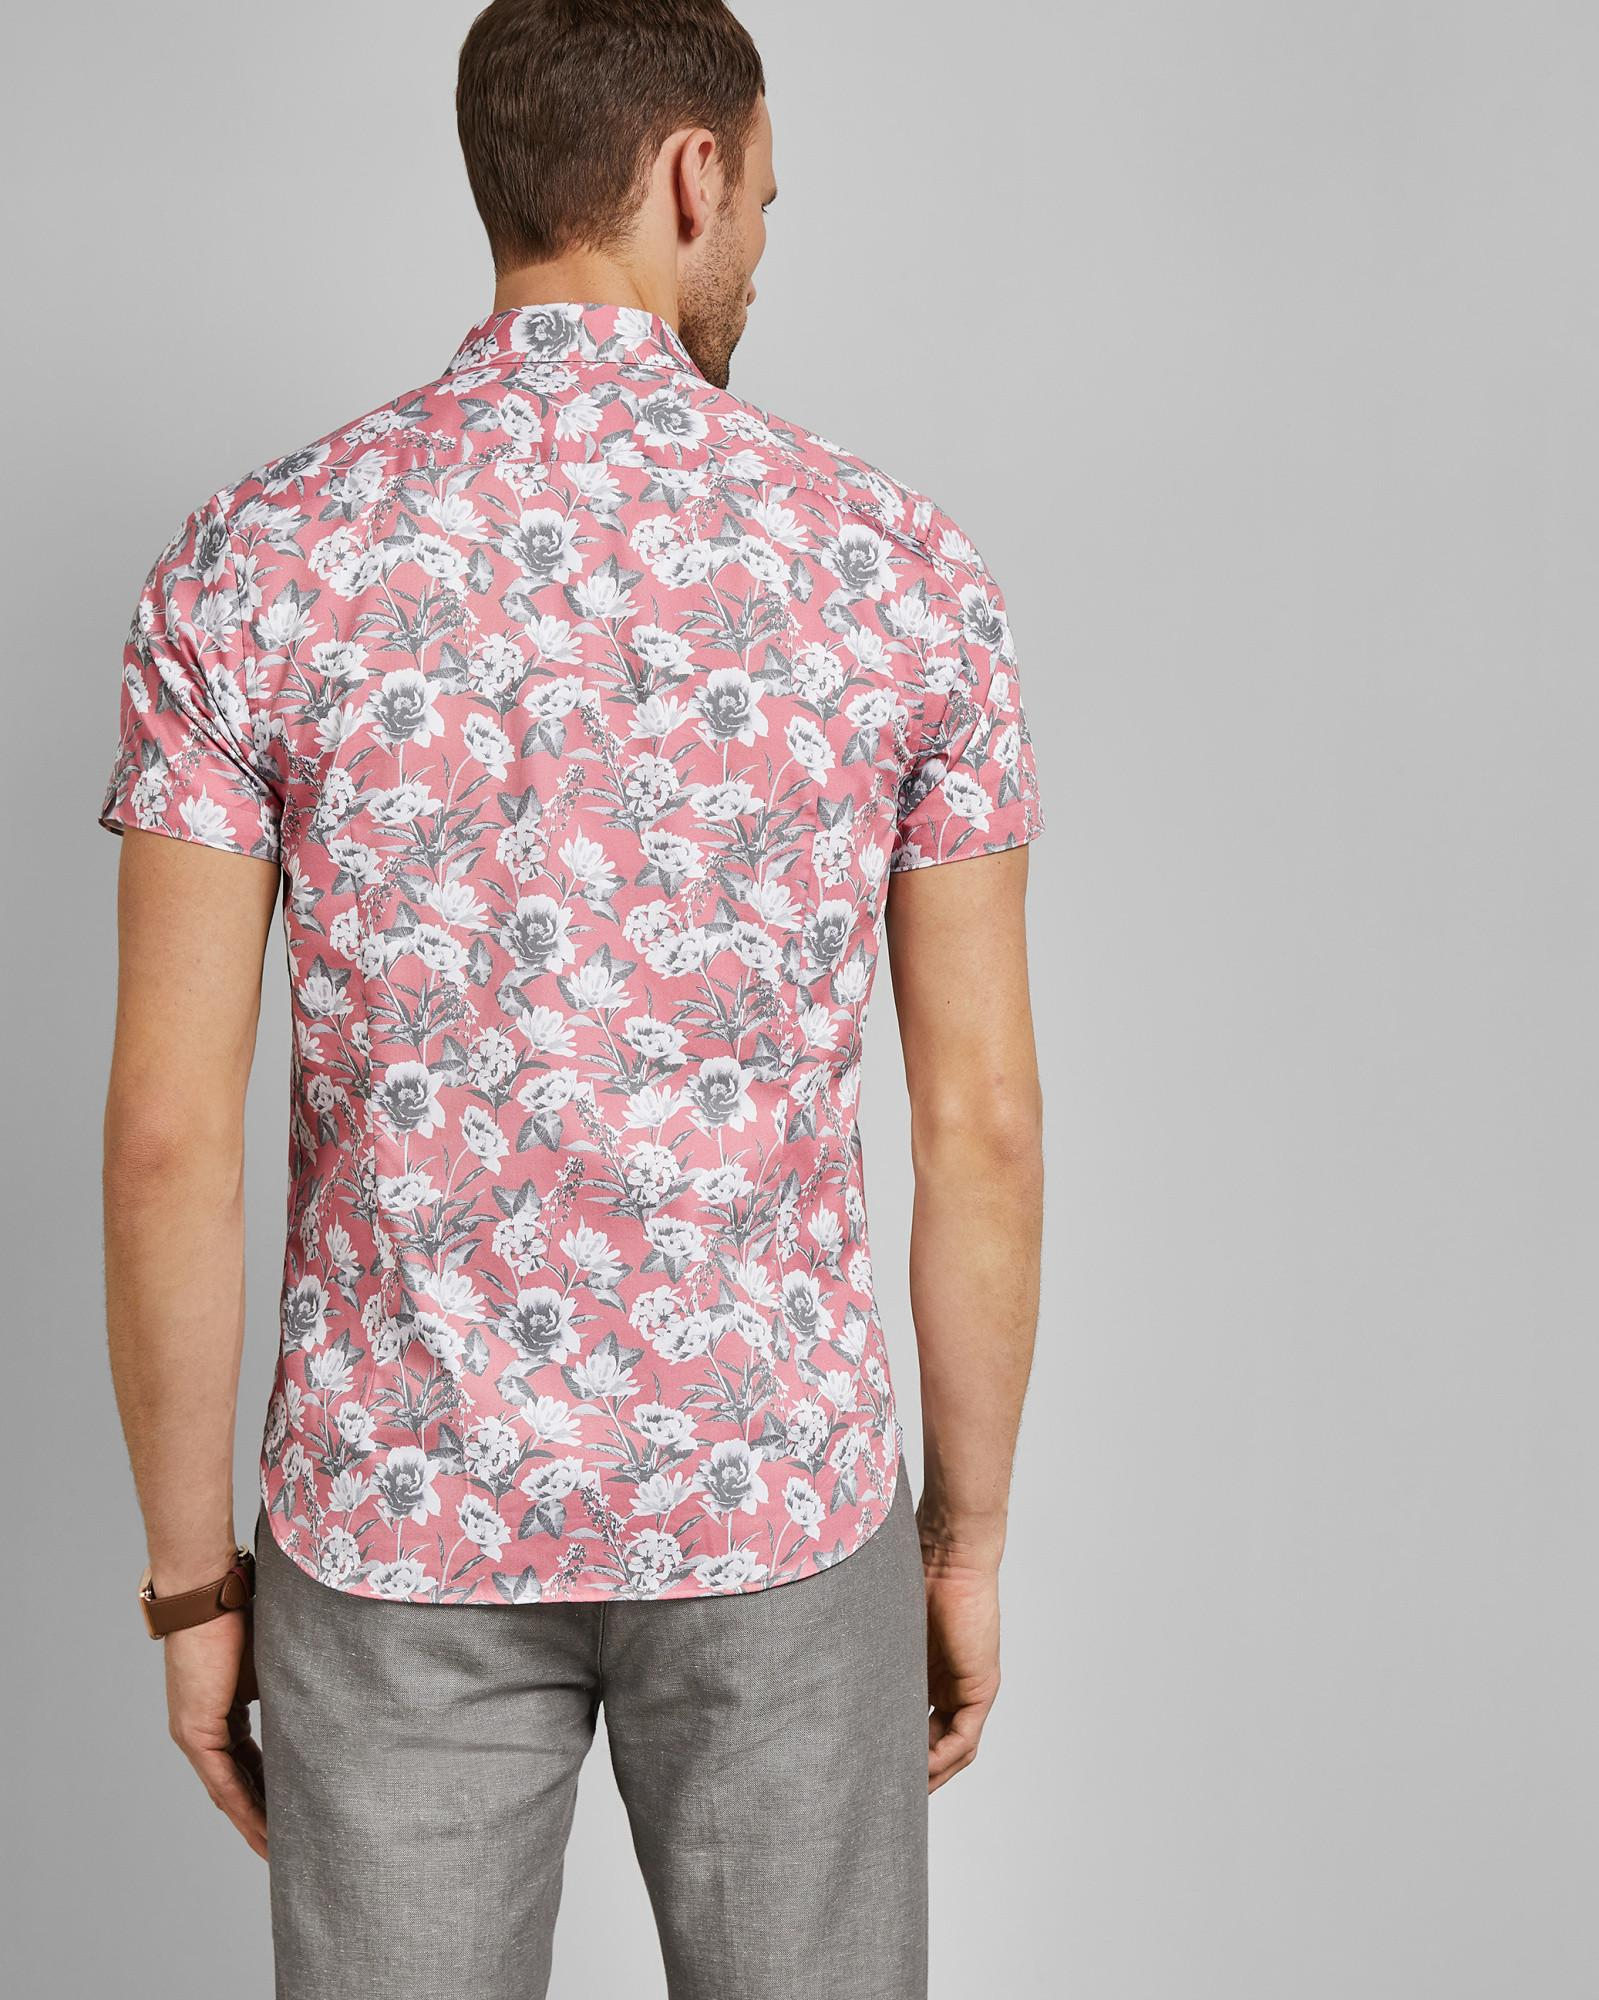 b71fe4e2bf55 Lyst - Ted Baker Floral Print Cotton Shirt in Pink for Men